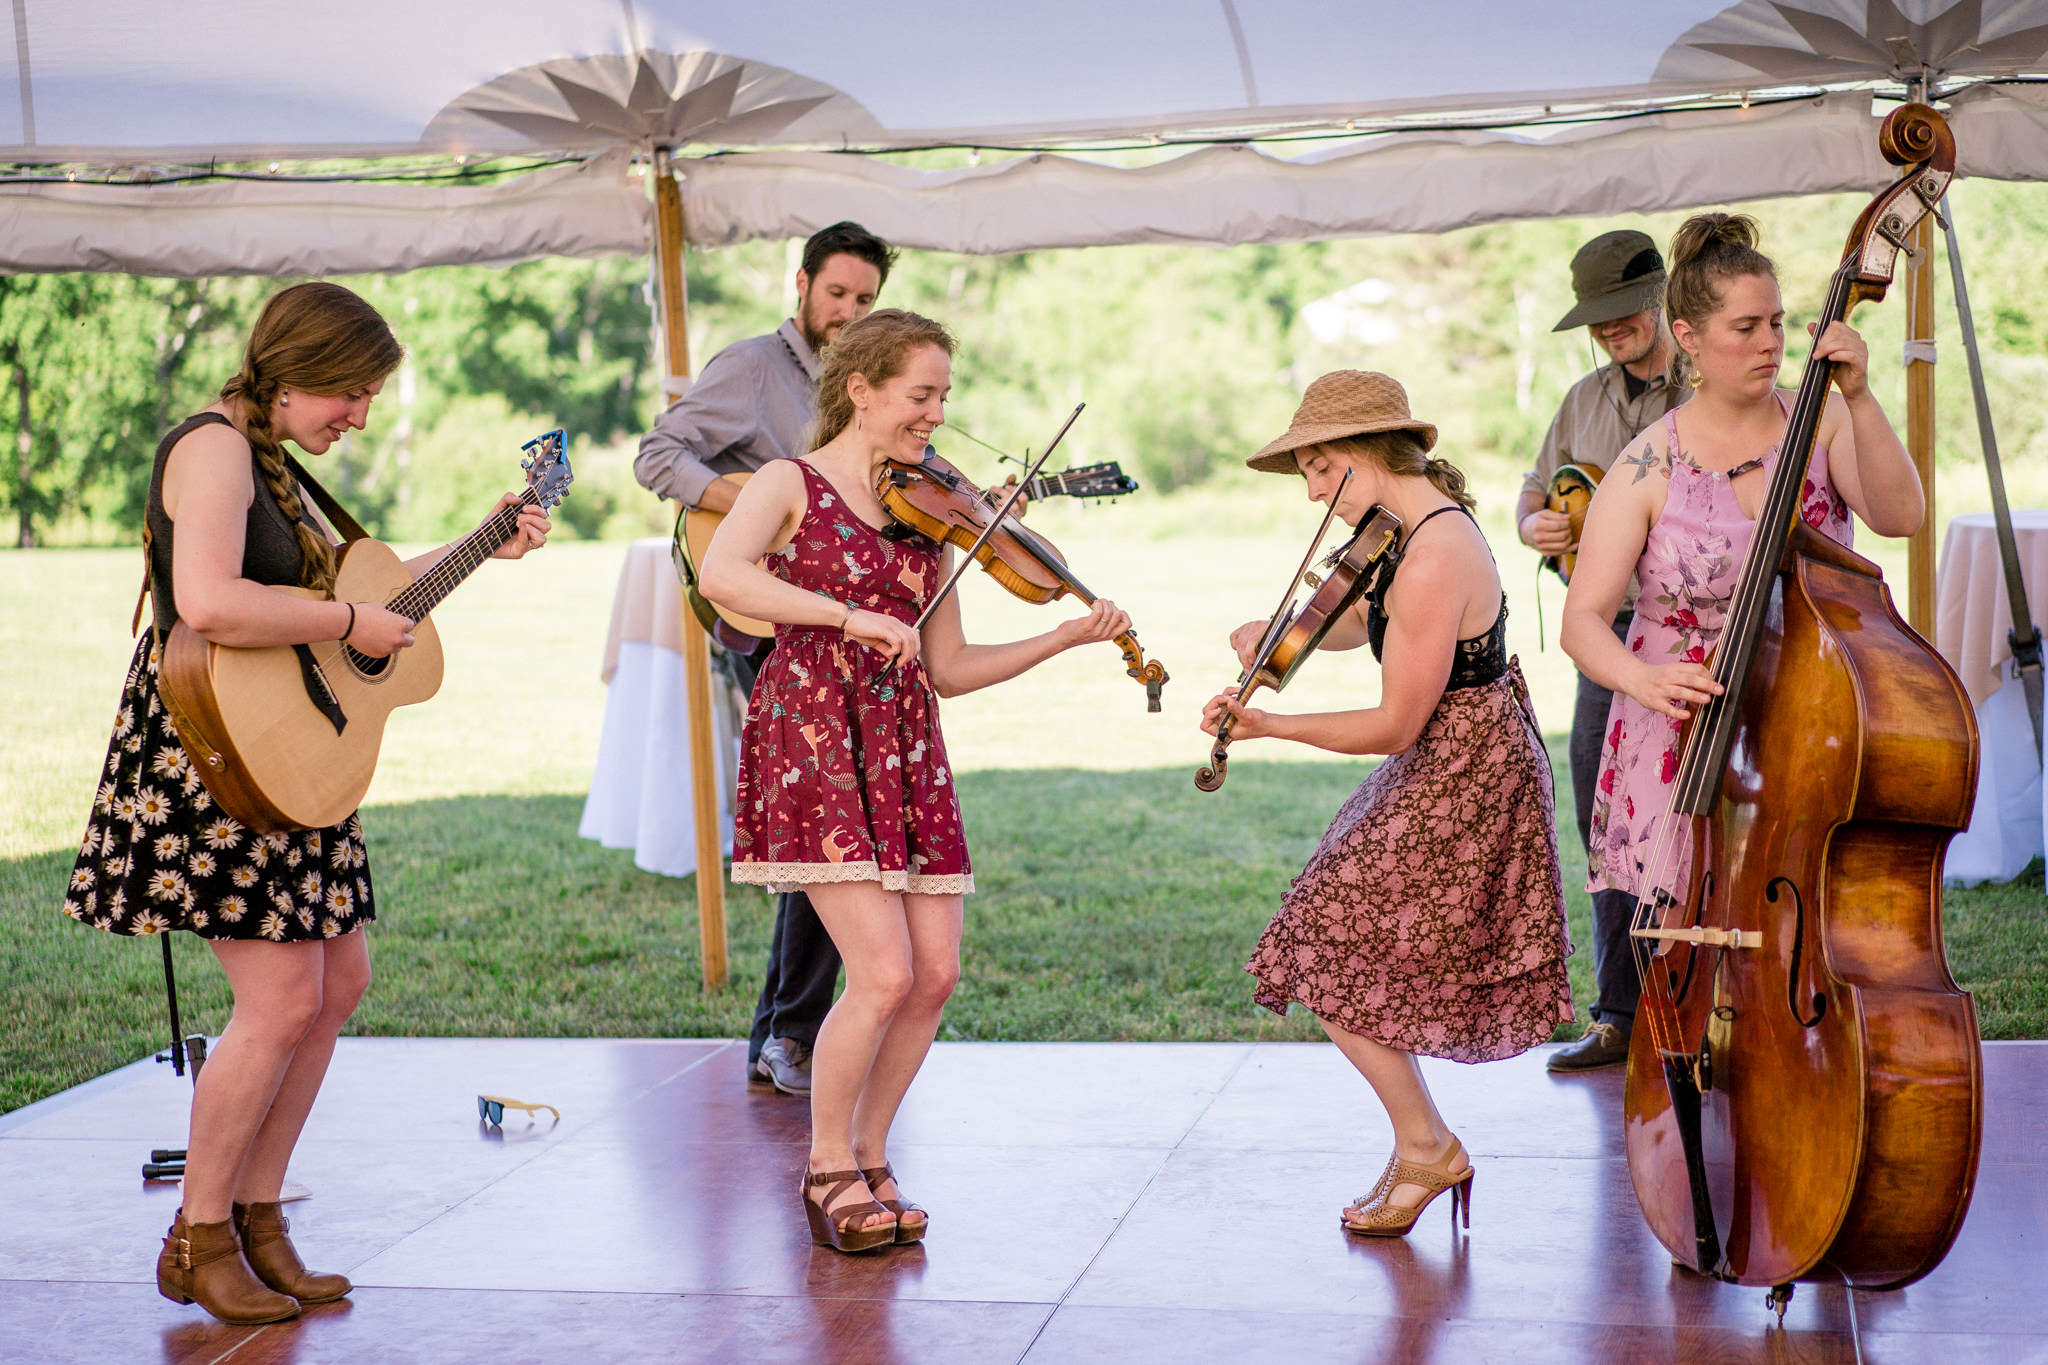 Green Sisters play acoustic at an outdoor wedding